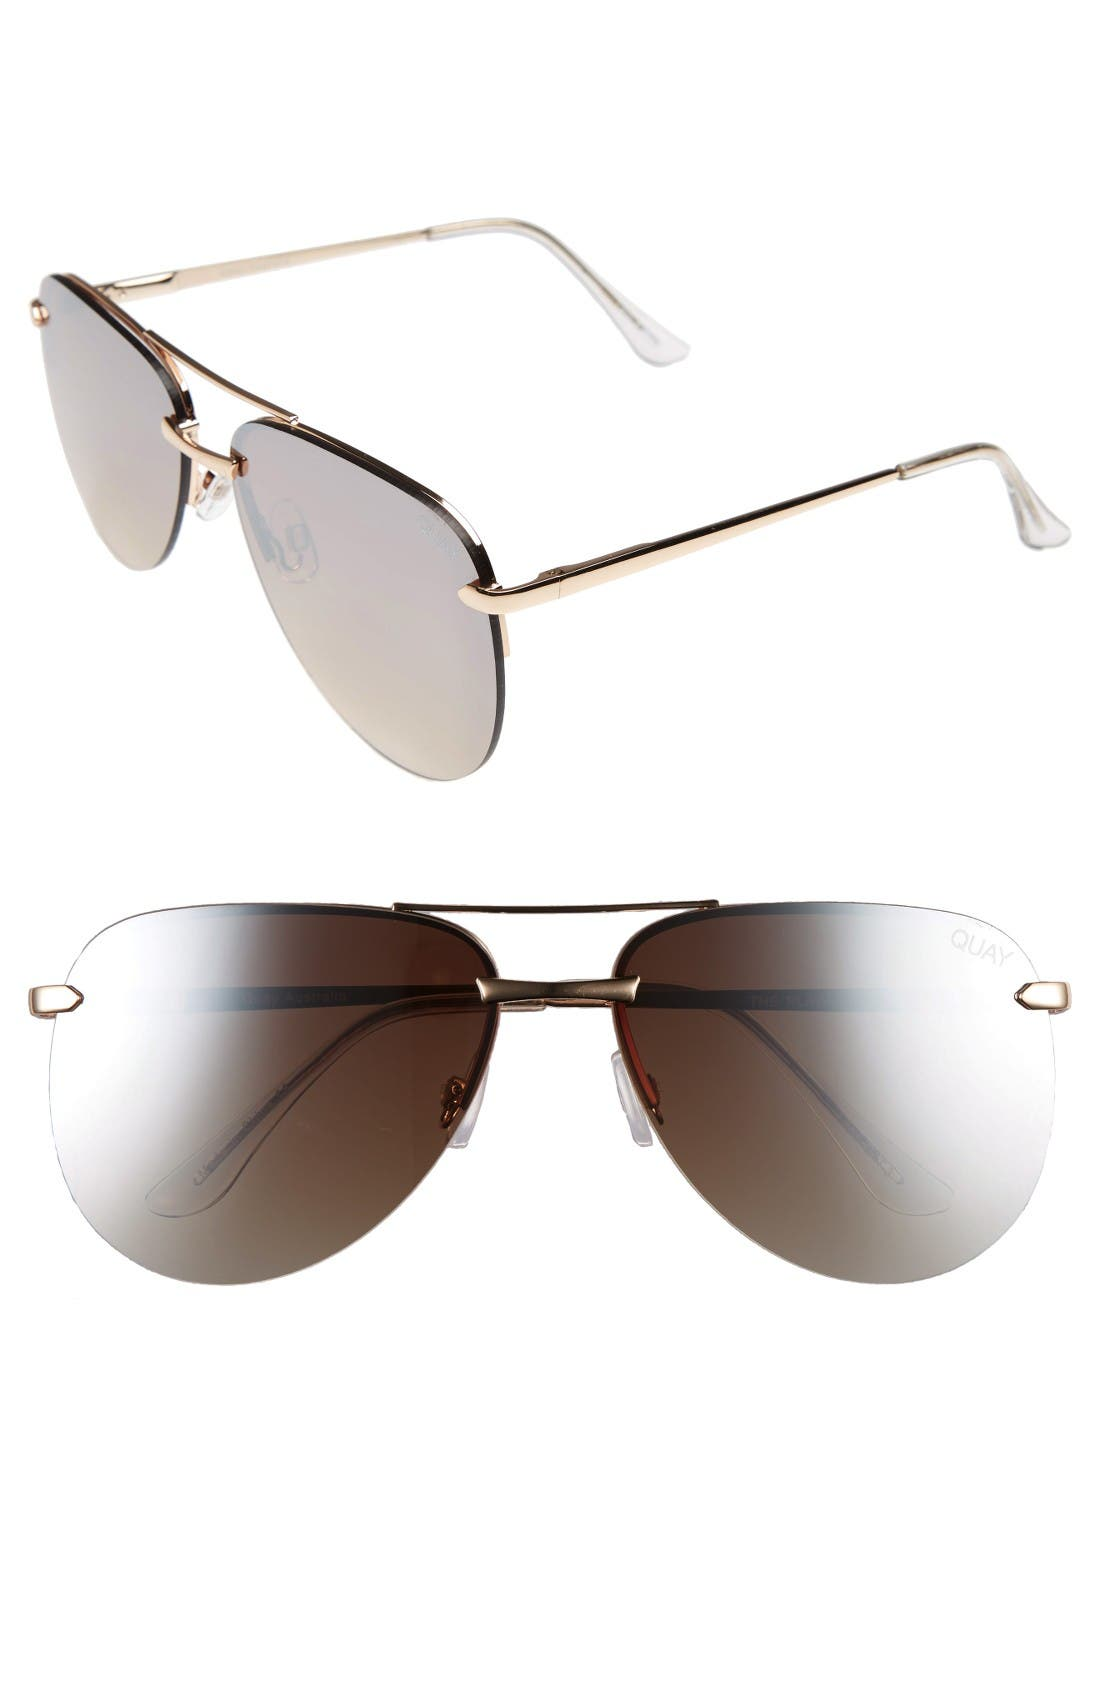 Quay Australia The Playa 64mm Aviator Sunglasses